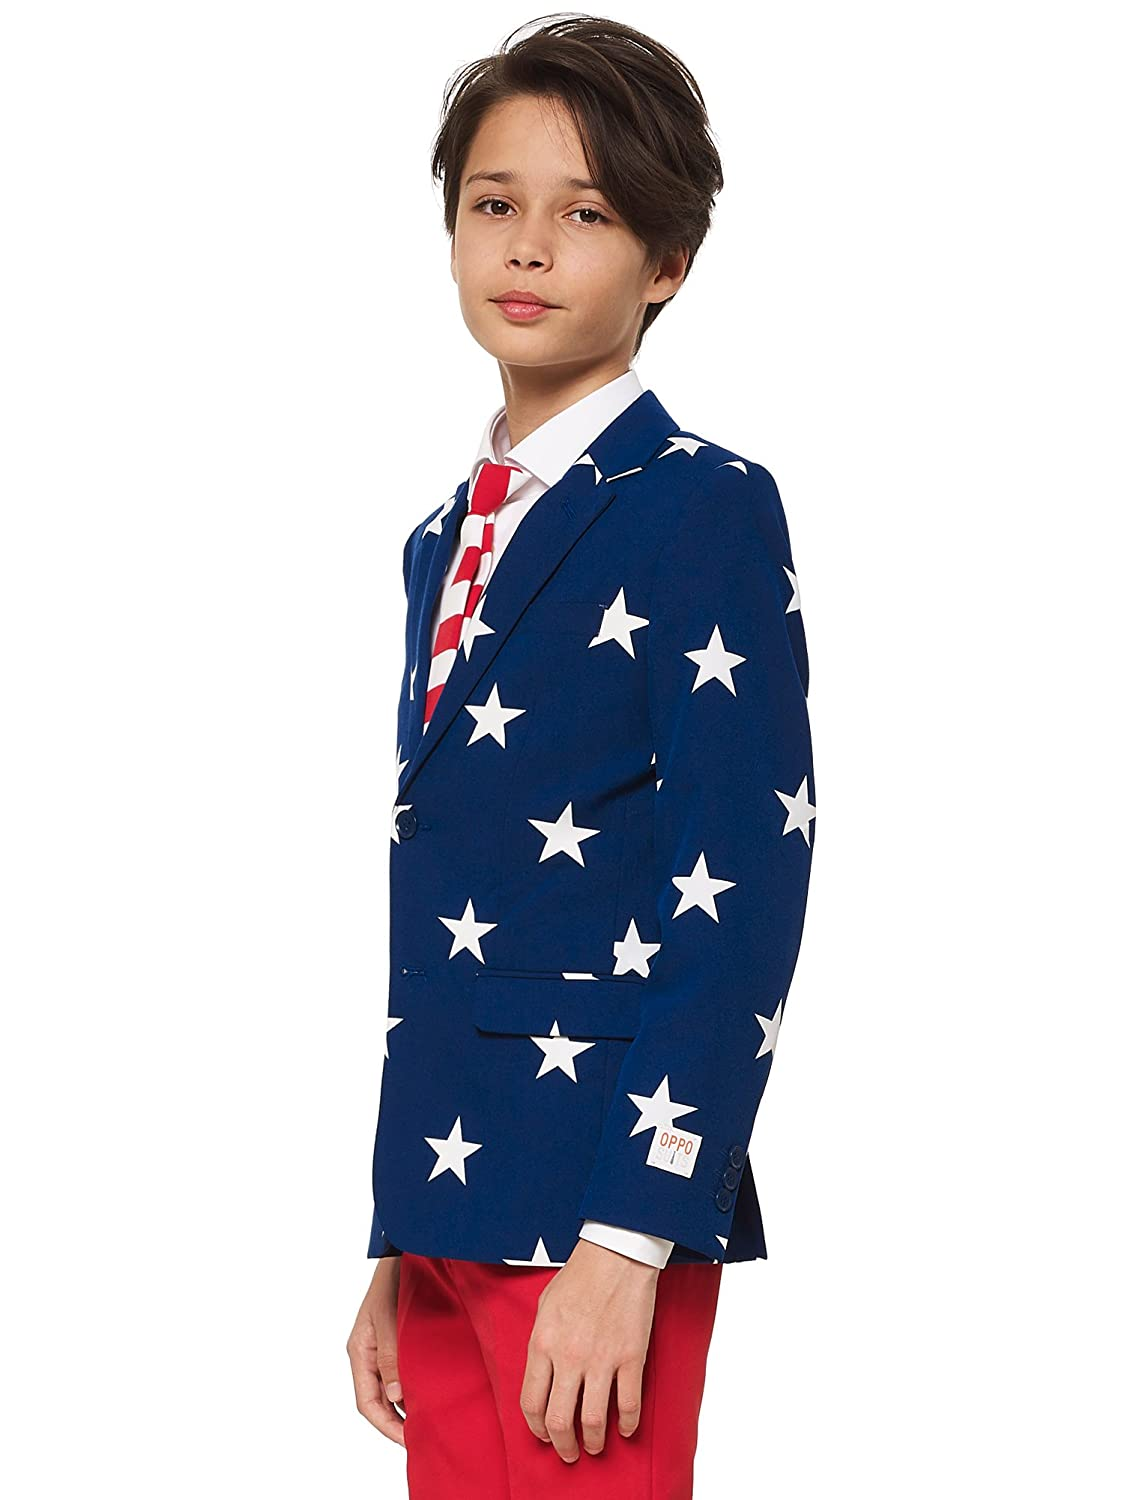 opposuits American Flag Suit For Boys & Teen Boys - Pants, Jacket and Tie